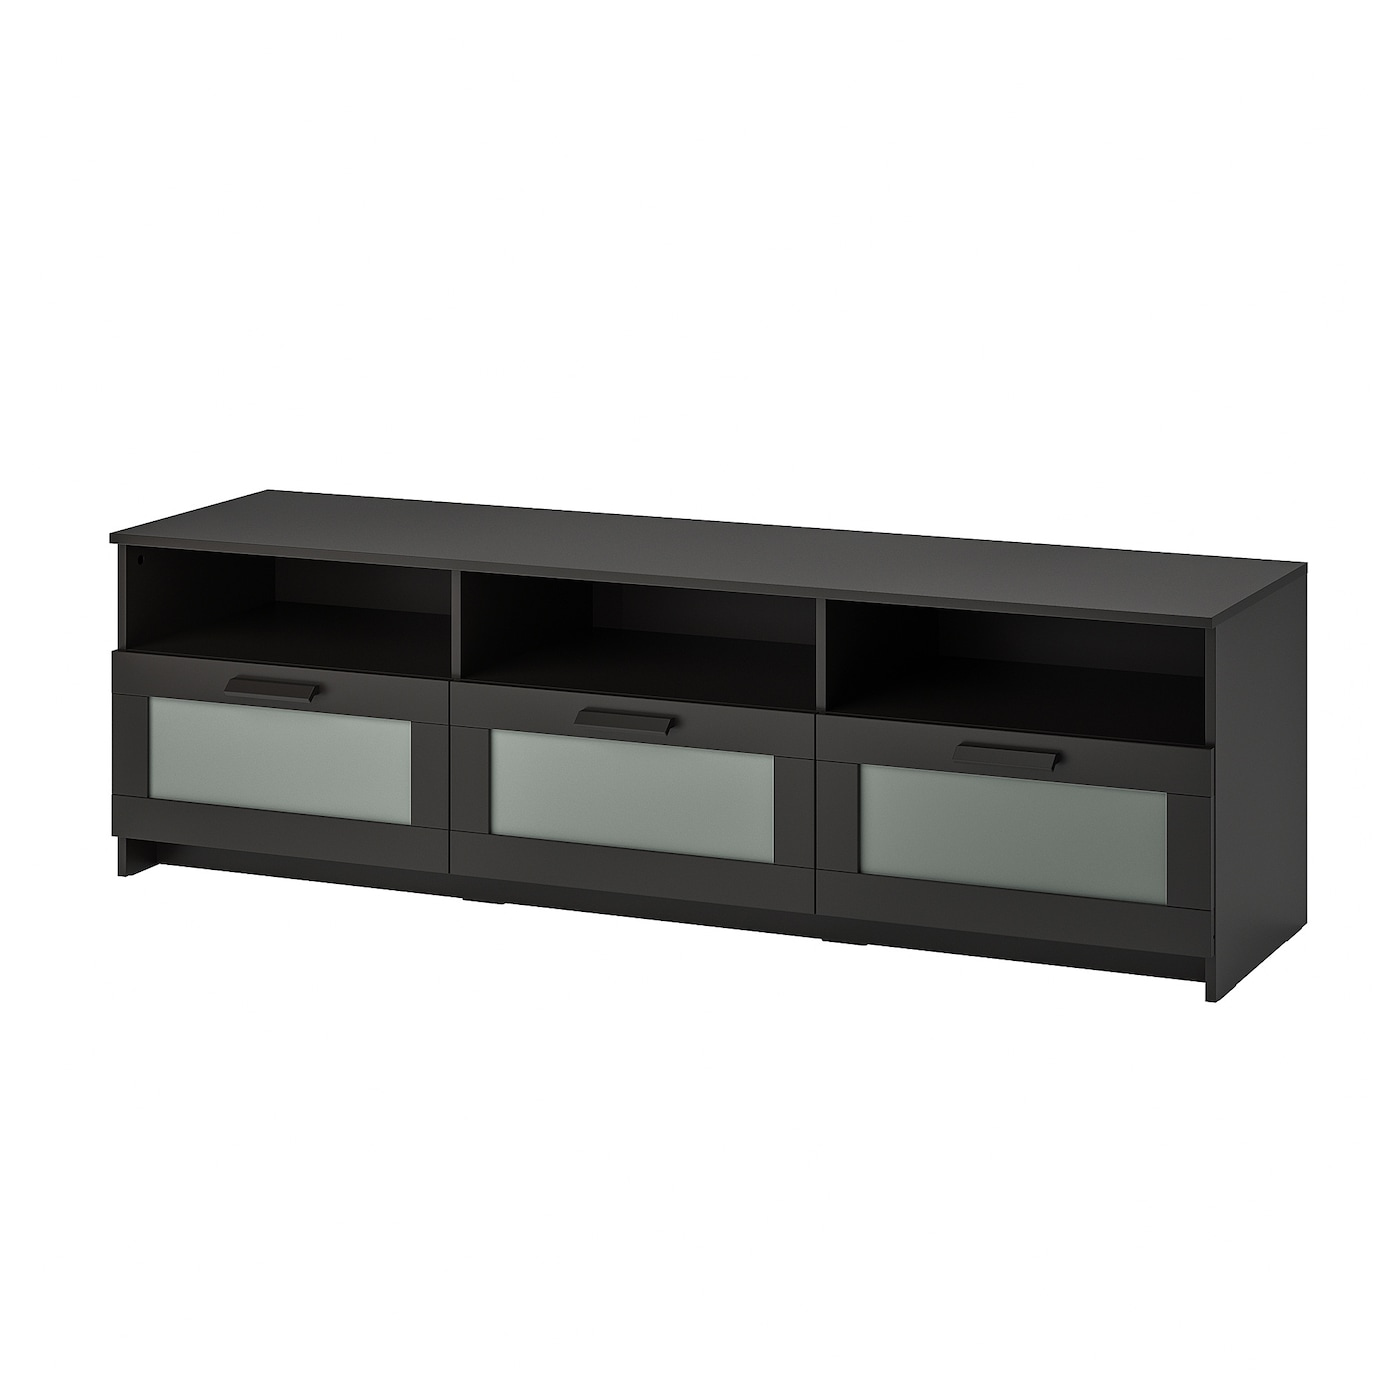 For Furniture Lighting Home Accessories More Ikea